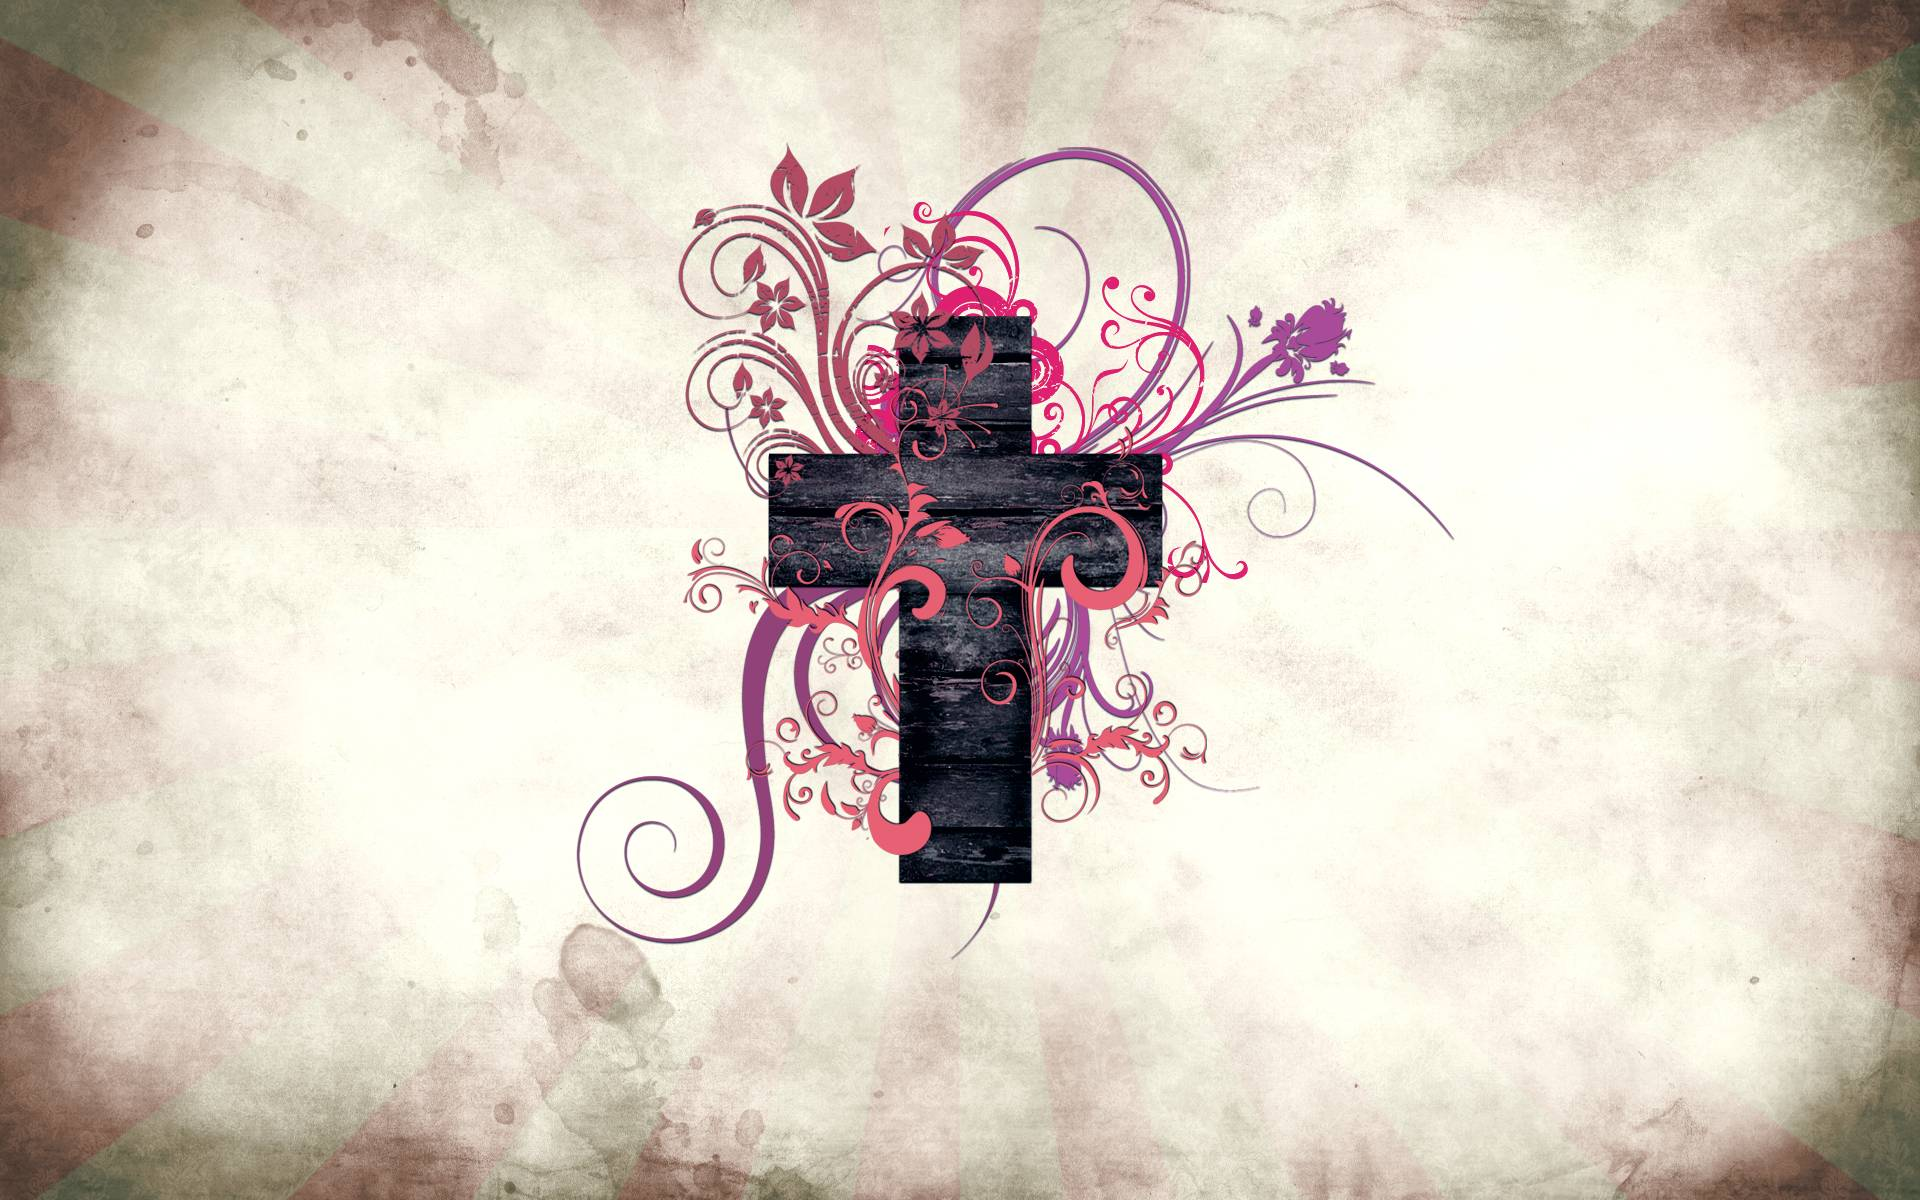 Abstract Art Cross Desktop Free Wallpapers